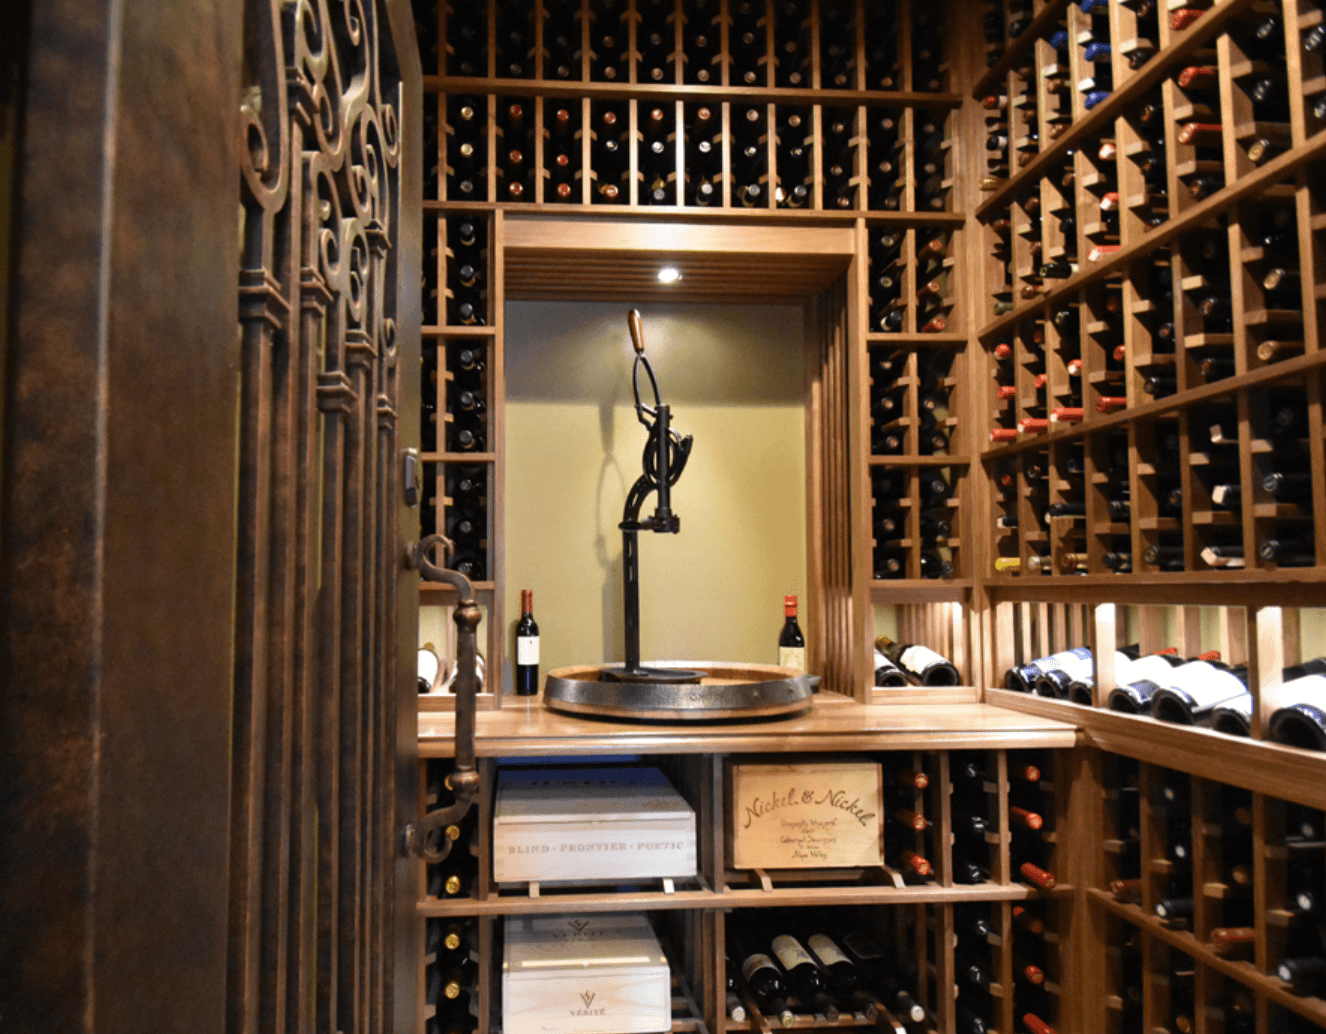 Mini Wine Cellar Ideas 99 wine cellar ideas for your home (photos)